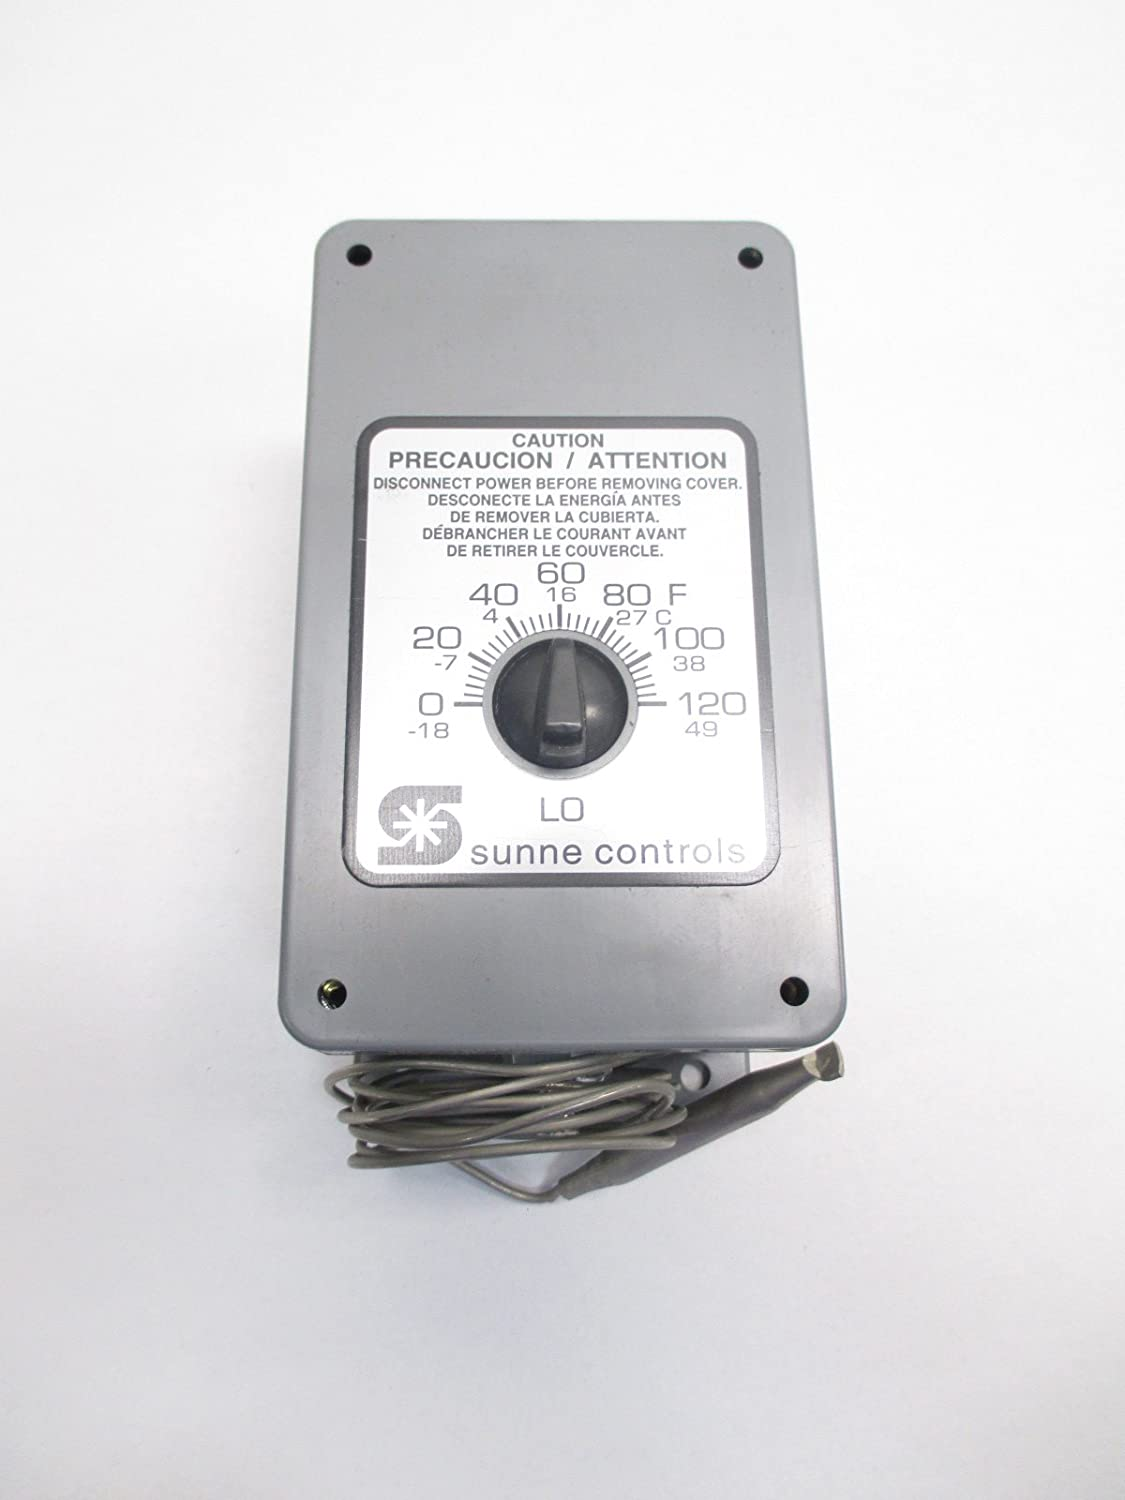 NEW SUNNE CONTROLS TC119-0010 0-120F 120/240V-AC TEMPERATURE CONTROLLER D494979: Amazon.com: Industrial & Scientific